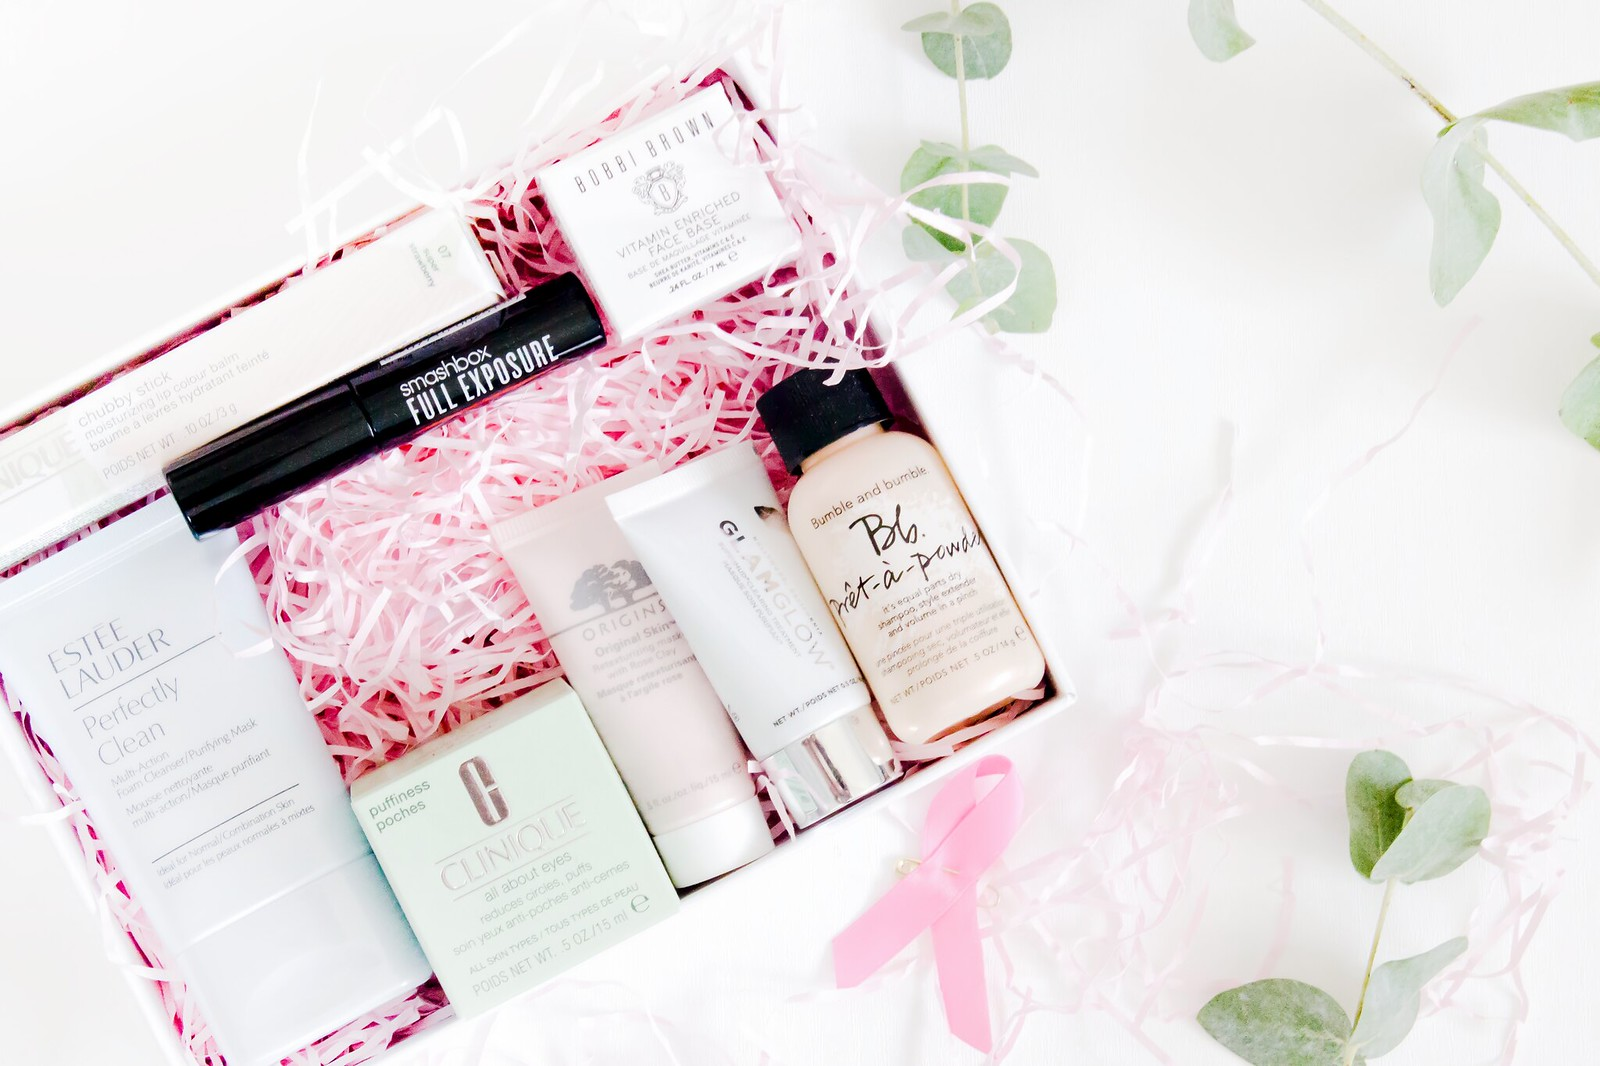 Estée Lauder Breast Cancer Campaign Beauty Box - Breast Cancer Awareness